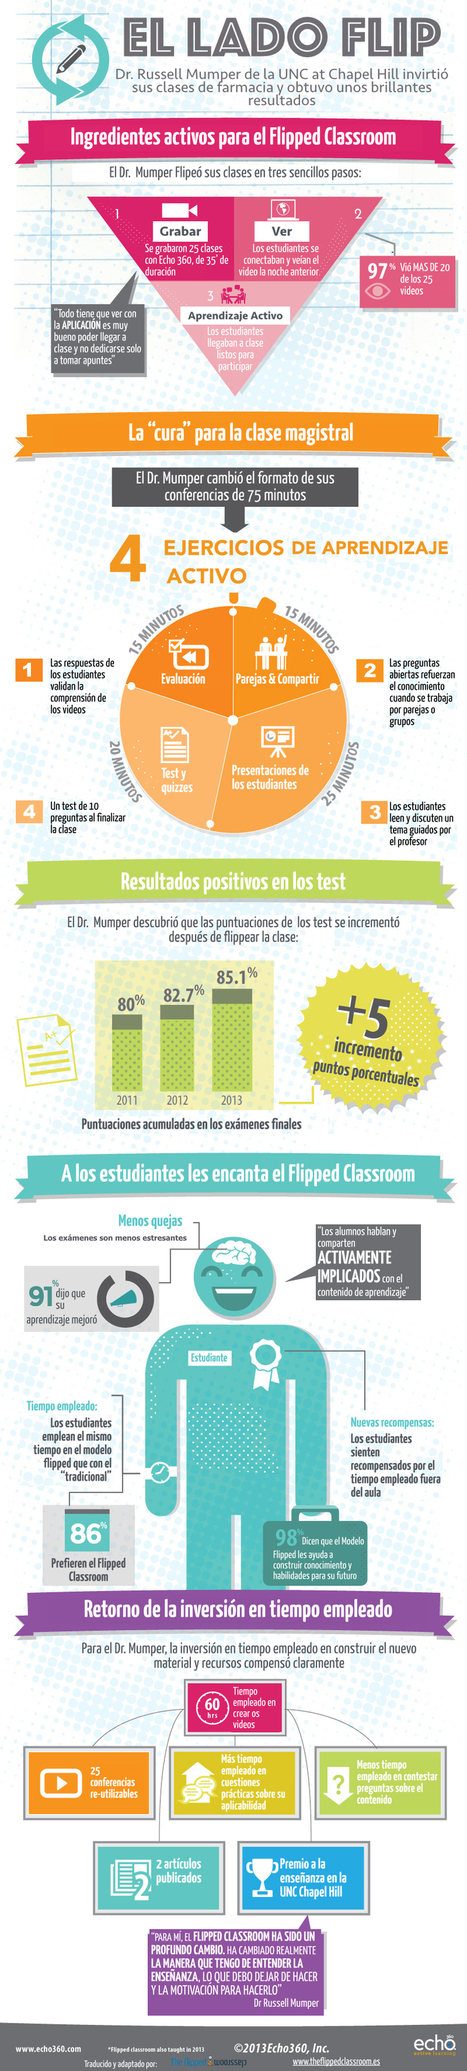 "El Lado Flip: caso de éxito de ""The Flipped Classroom"" #infografia #infographic #education 